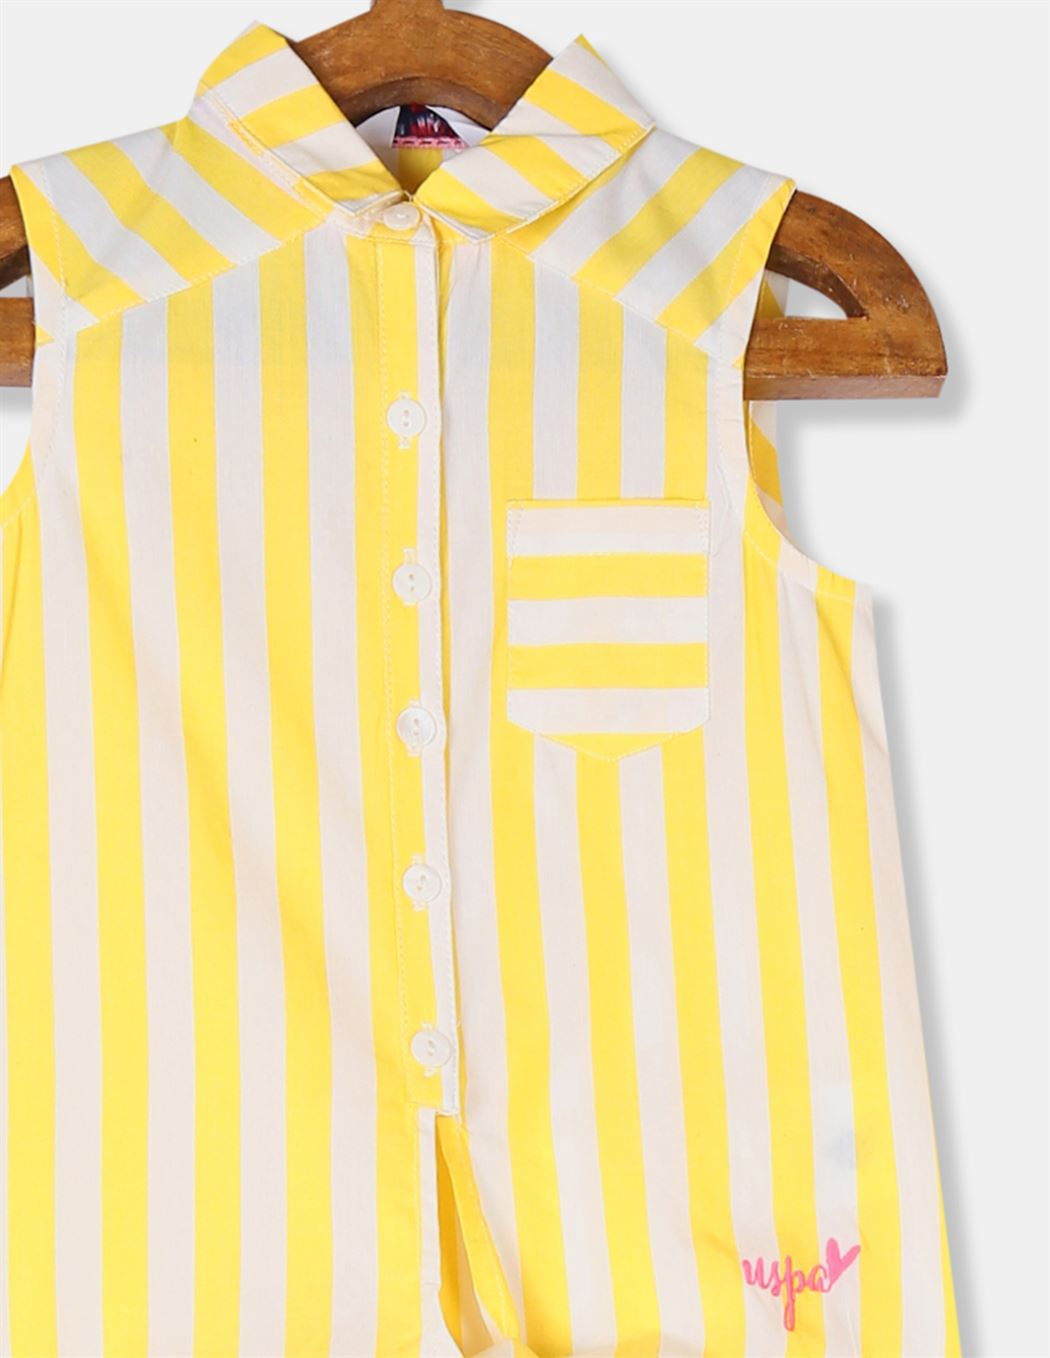 U.S. Polo Assn. Girls Striped Yellow Shirt